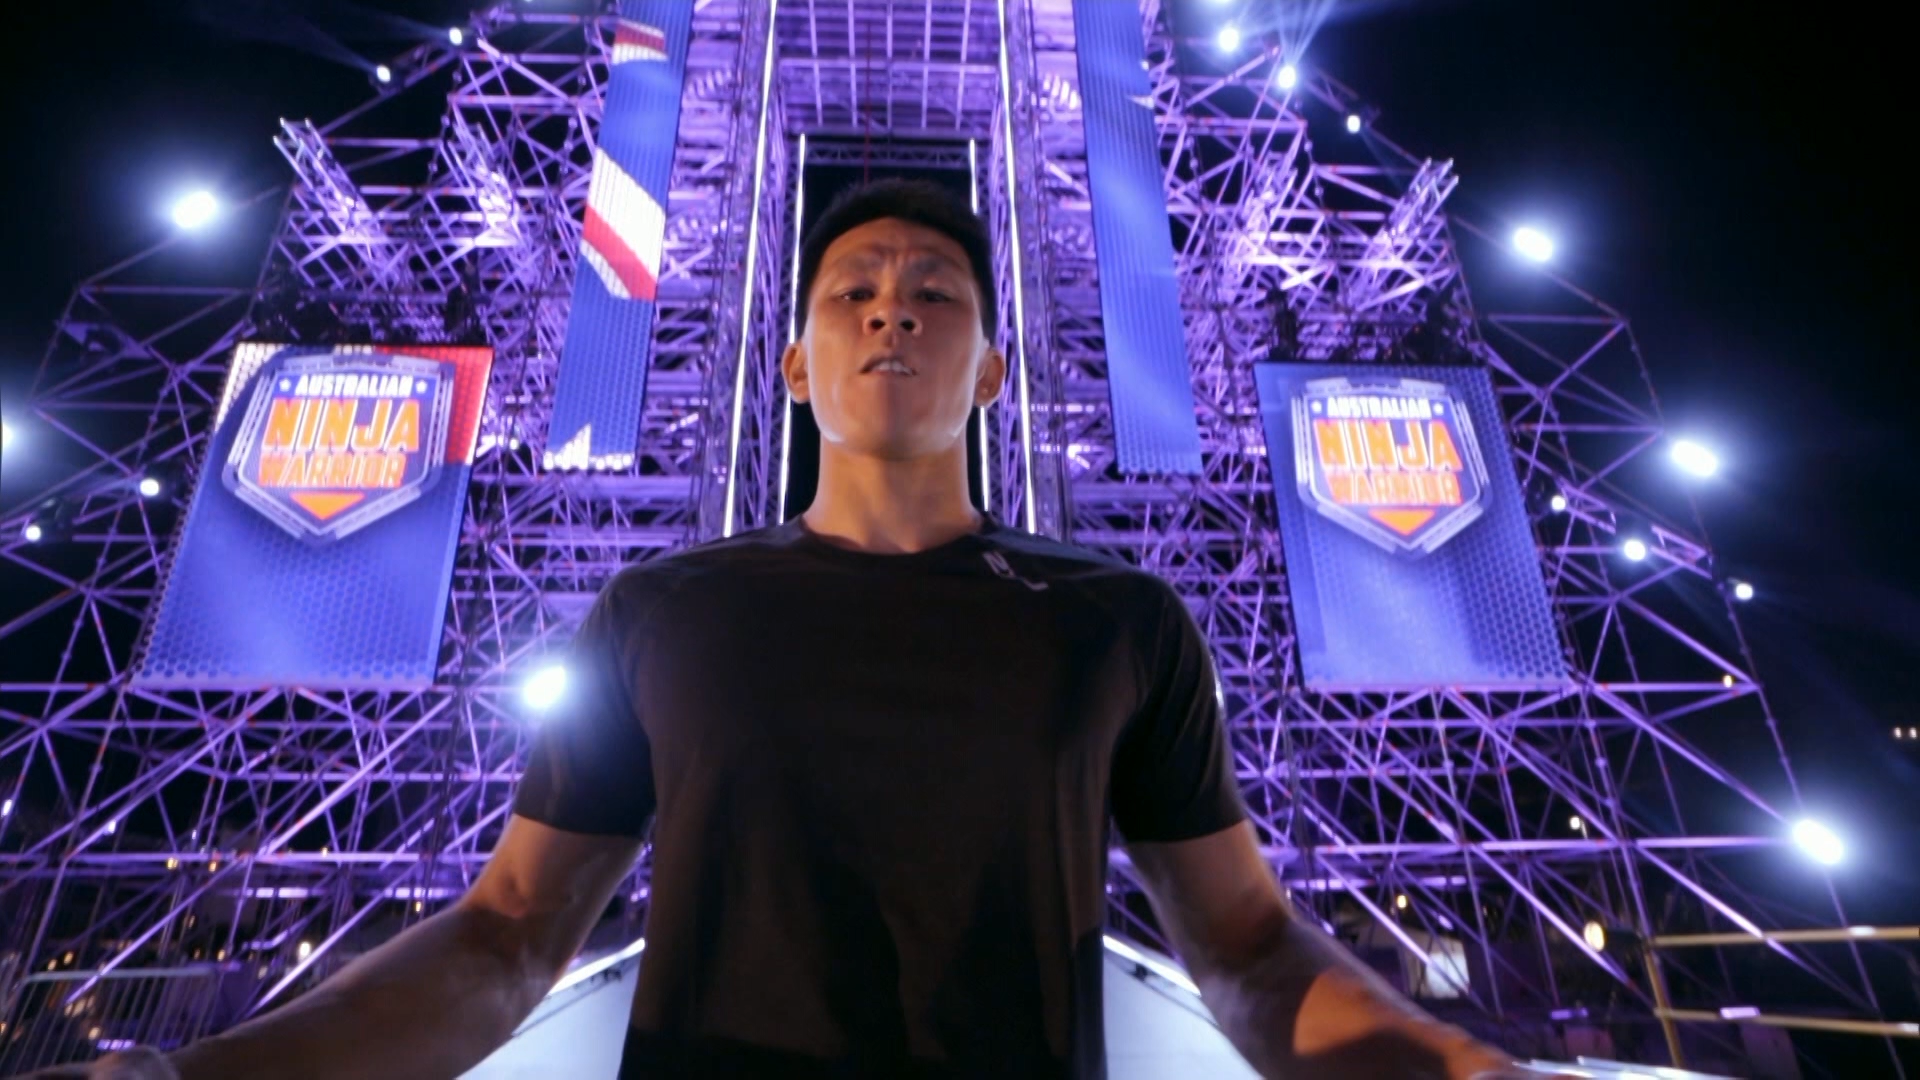 Ep5 - Benjamin Lau is the Furthest Fastest in Heat Five - Australian Ninja Warrior 2019